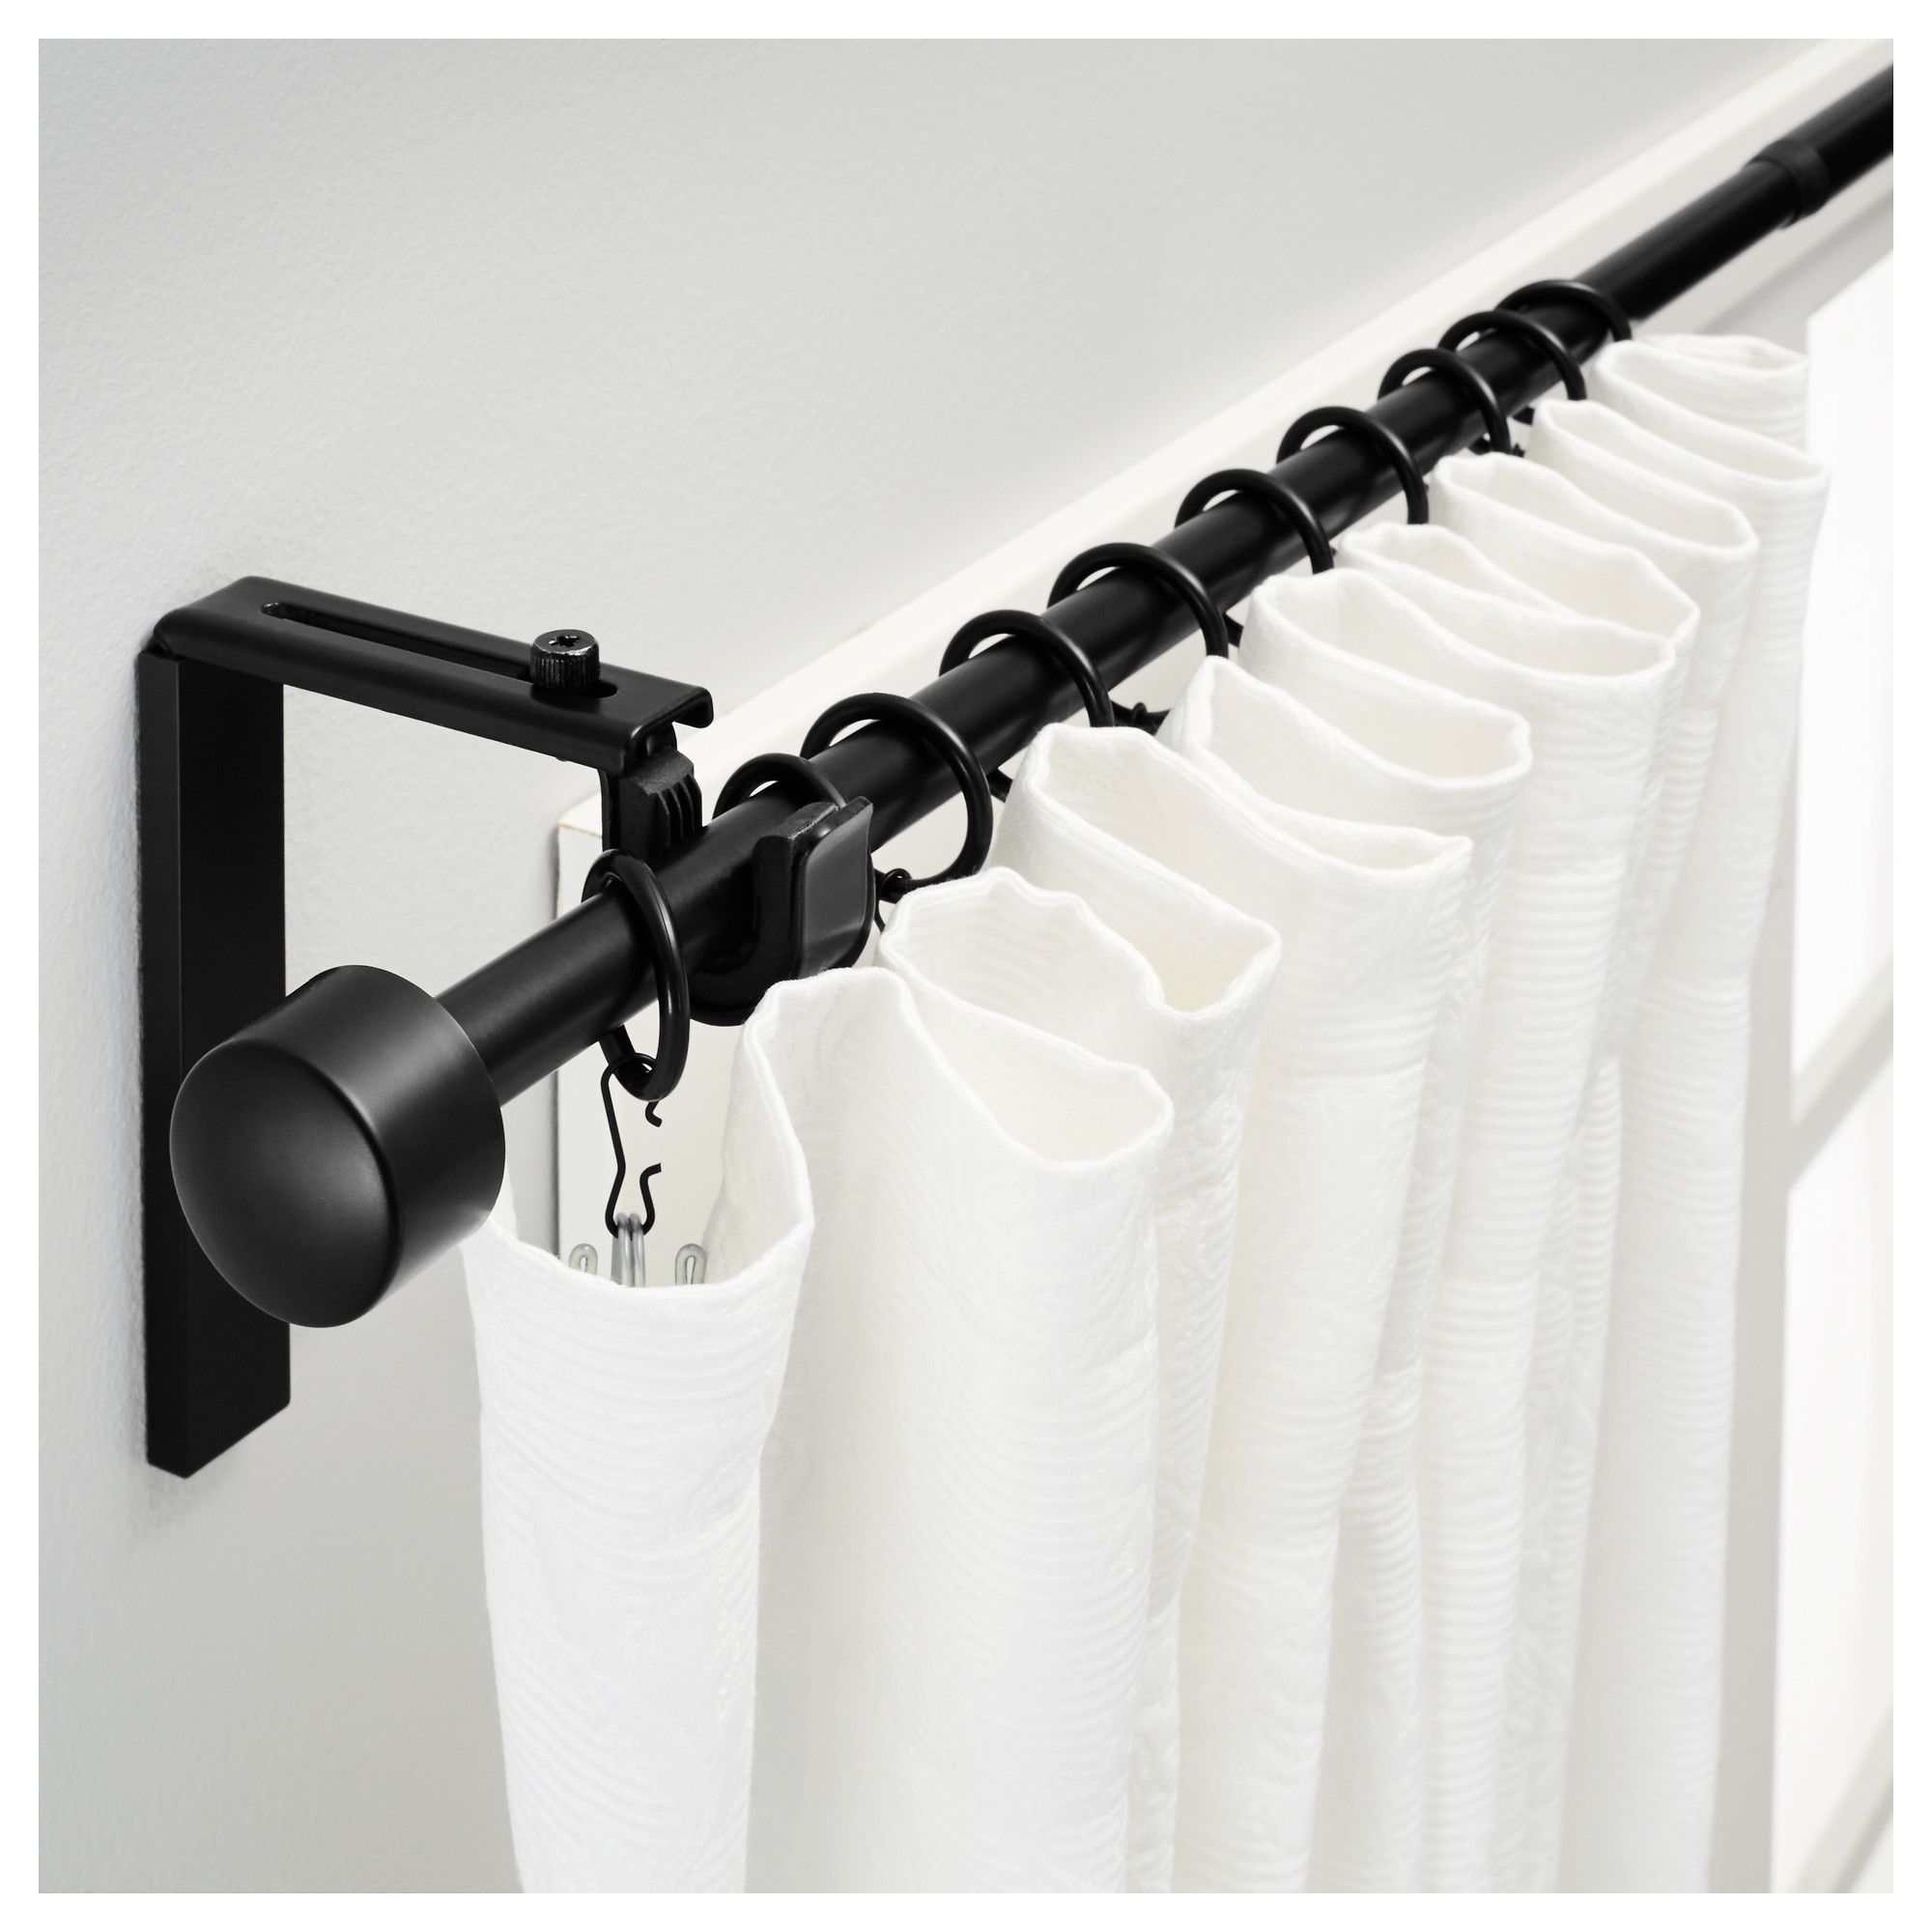 Ikea Racka Black Curtain Rod Combination Ikea Curtain Rods